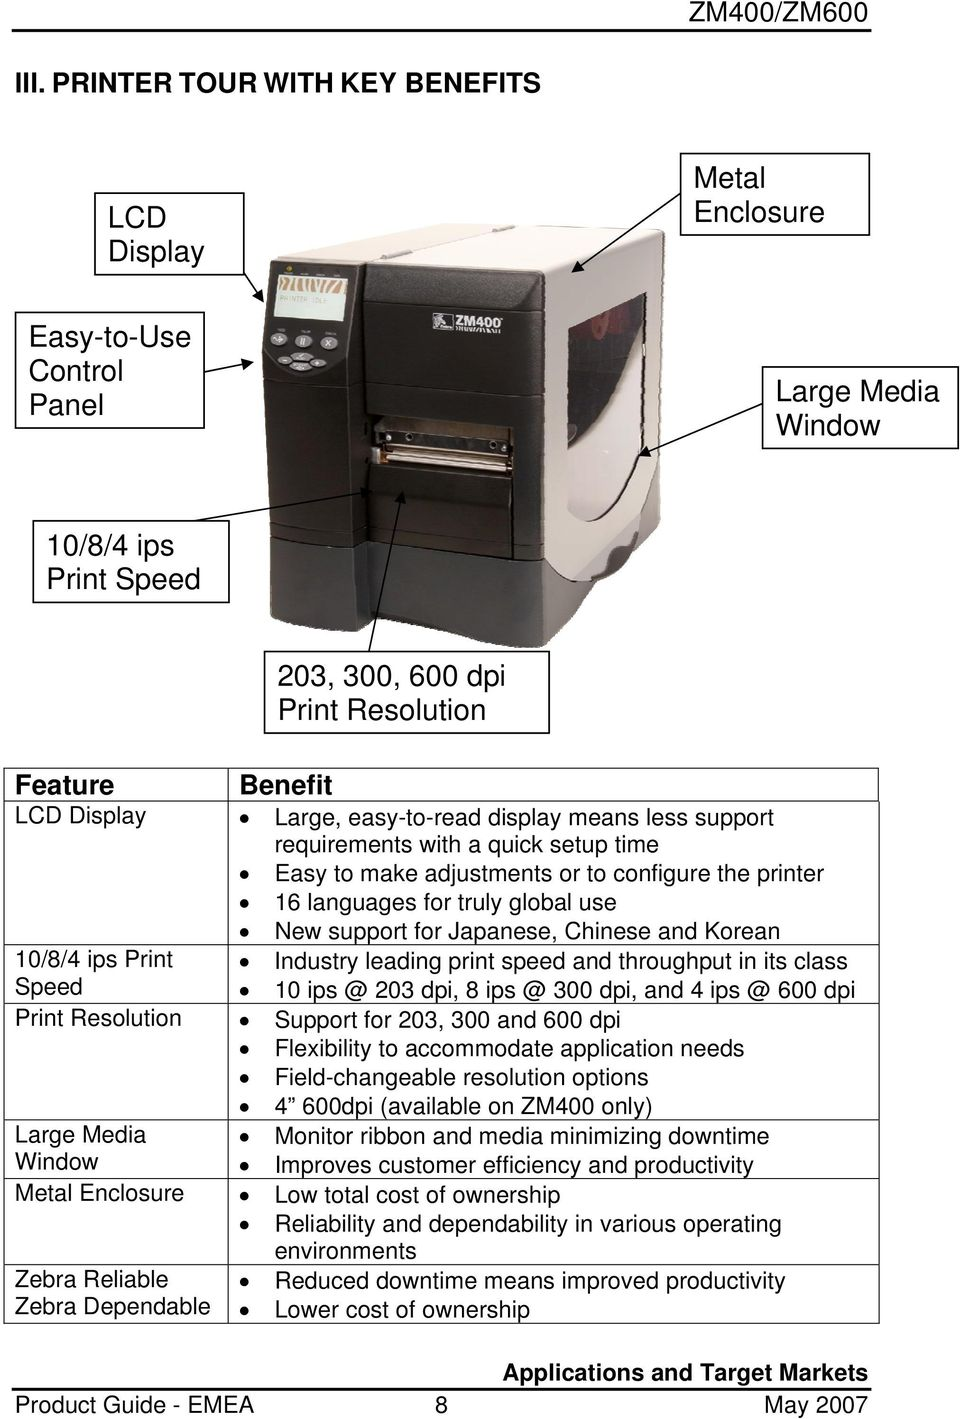 ips Print Speed Print Resolution Large Media Window Metal Enclosure Zebra Reliable Zebra Dependable Product Guide - EMEA Large, easy-to-read display means less support requirements with a quick setup